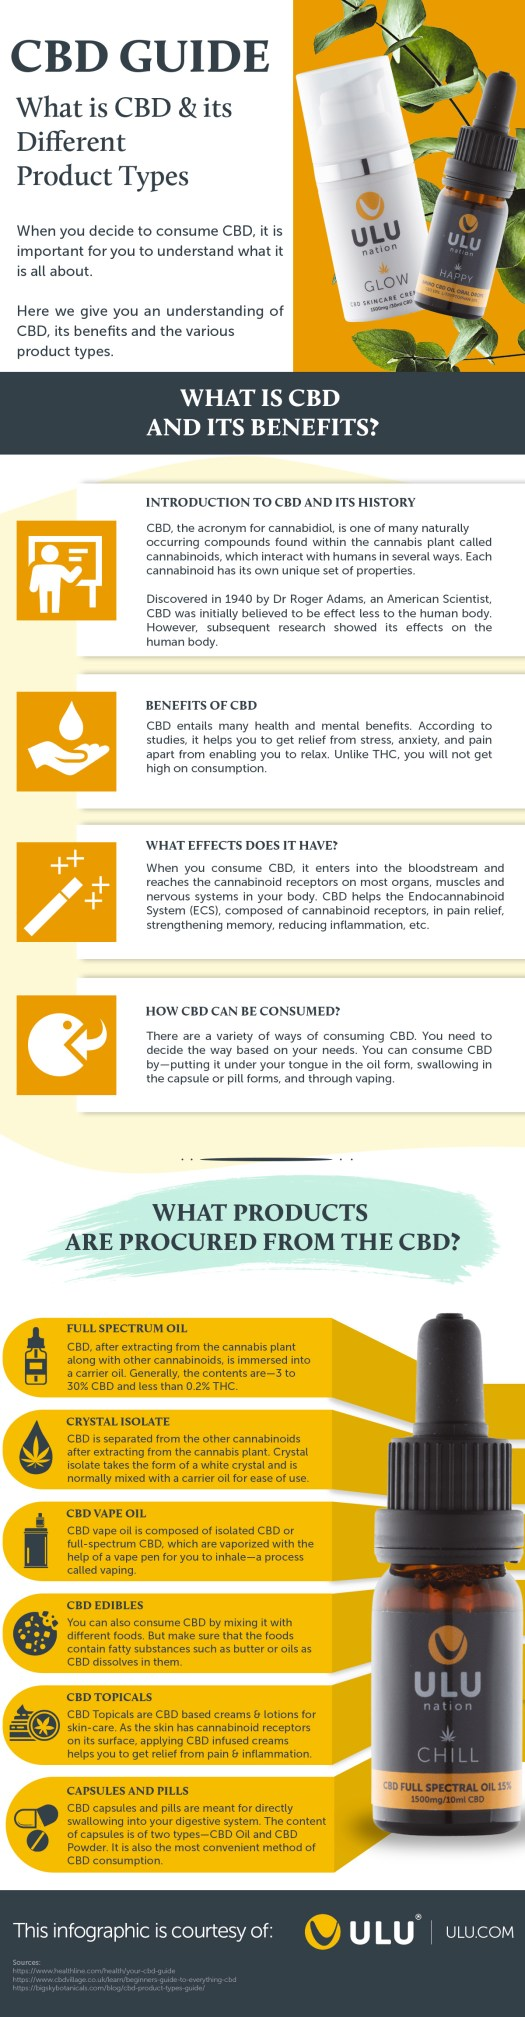 CBD Guide and its Different Product Types Infographic